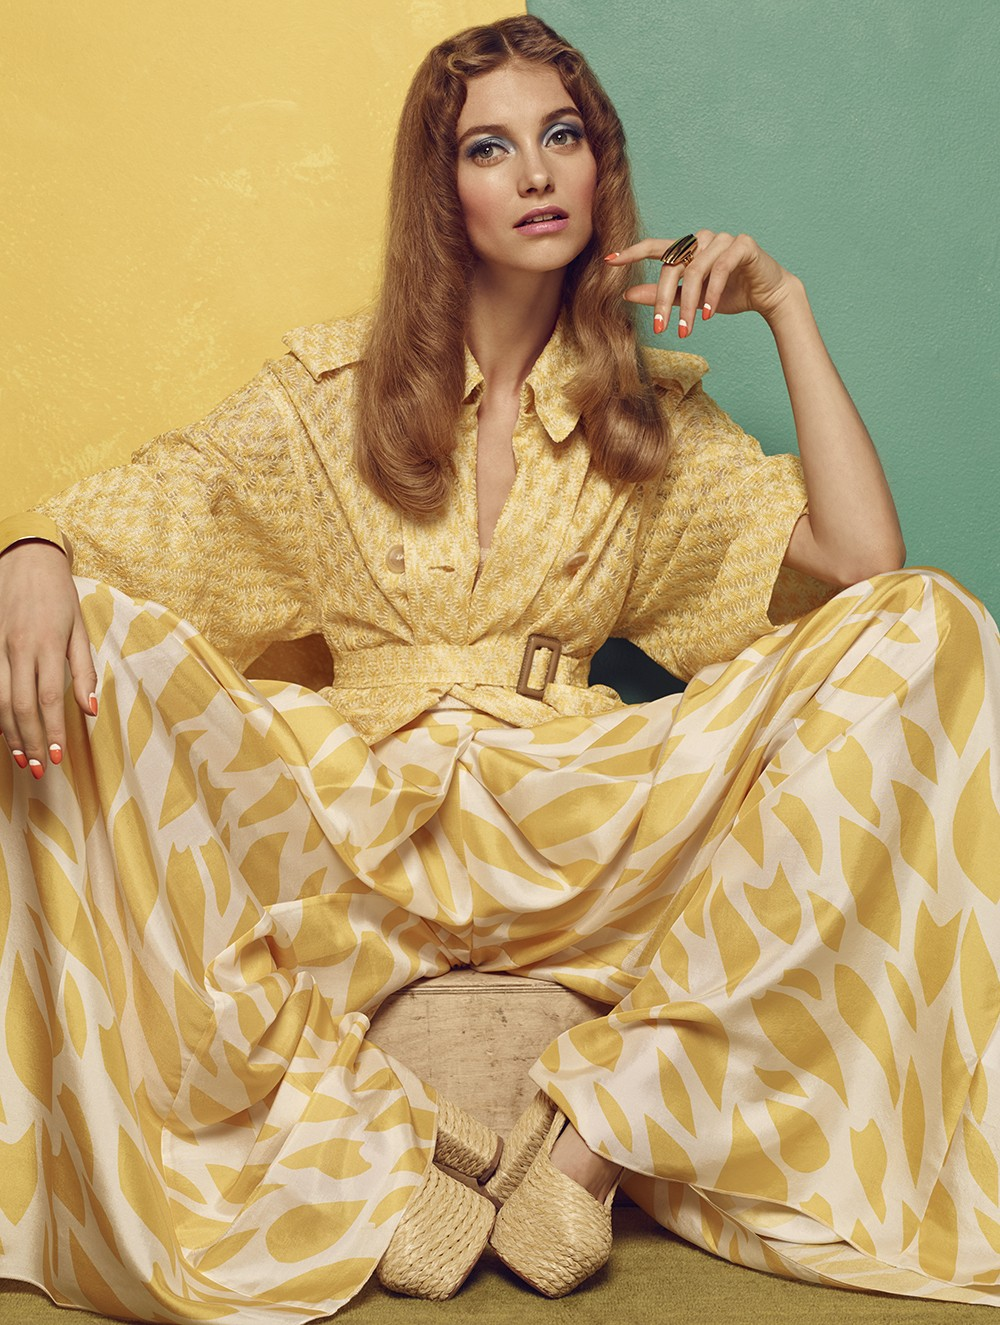 Chic Anni 70s 39 Iris Van Berne By Hong Jang Hyun For Glamour Germany March 2015 Visual